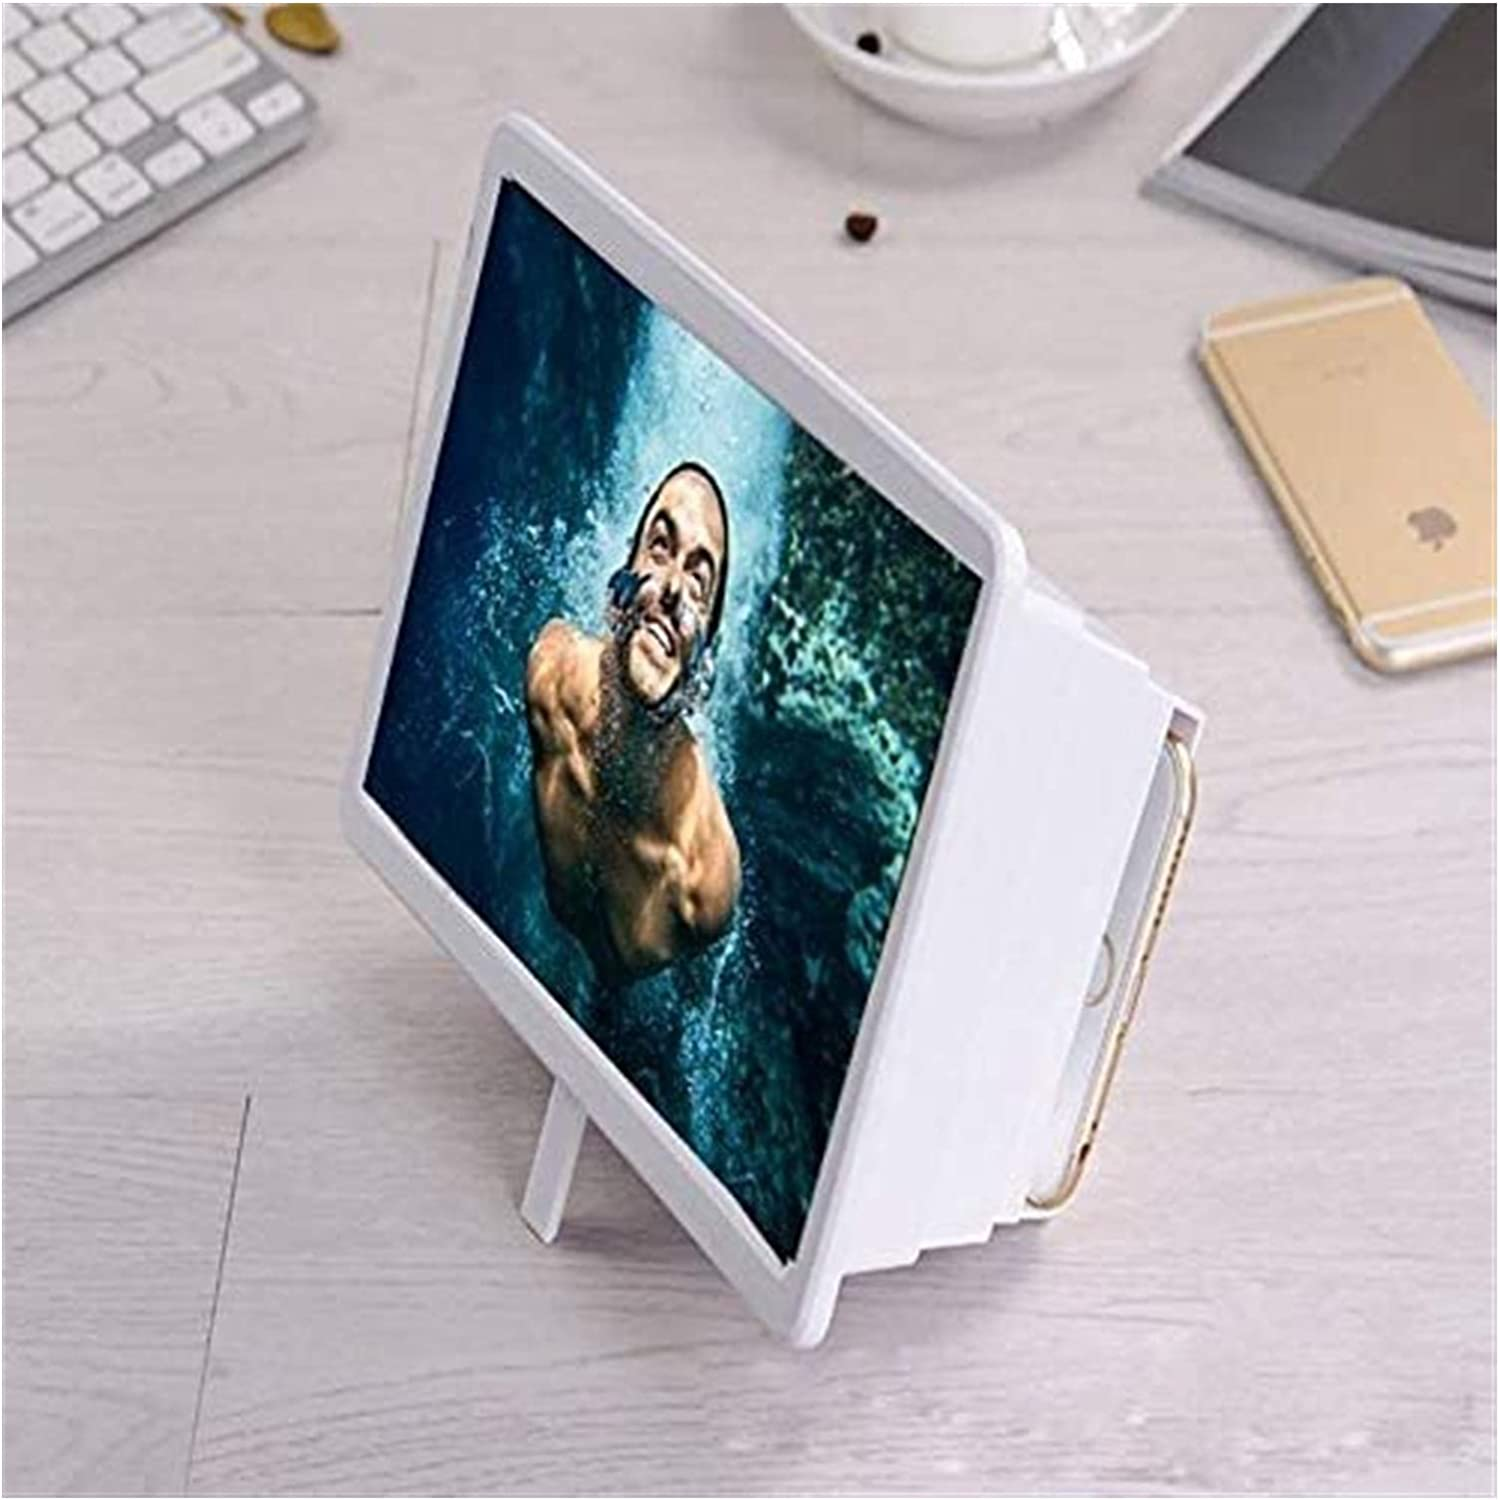 Portable Reading Courier shipping free Magnifier Mobile Unive High quality 3D Screen Phone